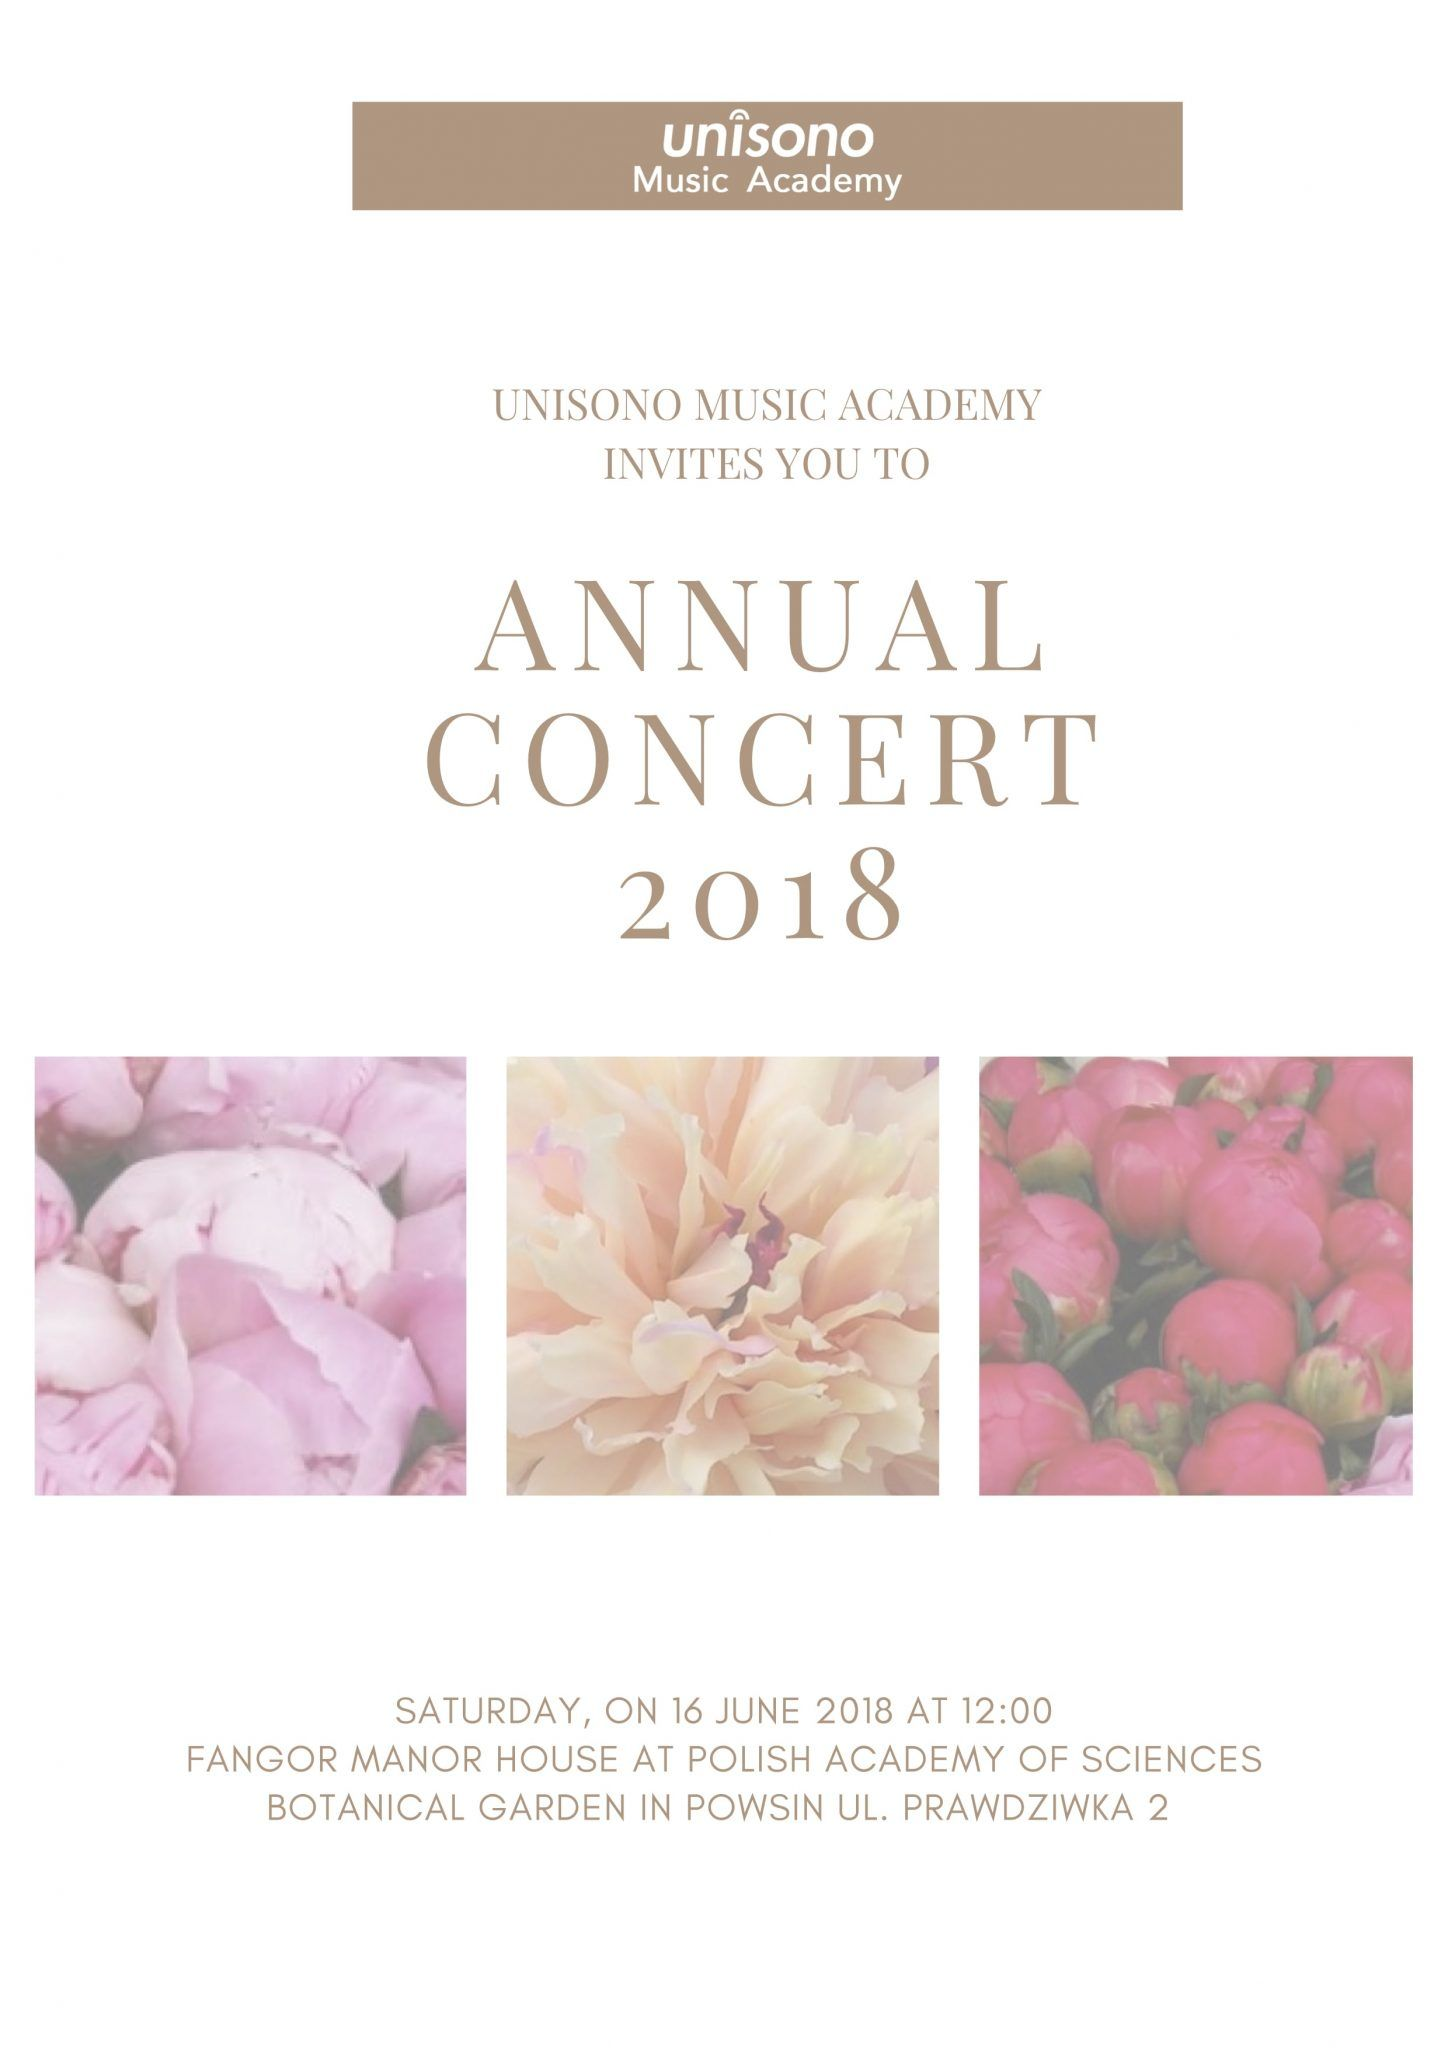 Annual Concert 2018 Invitation